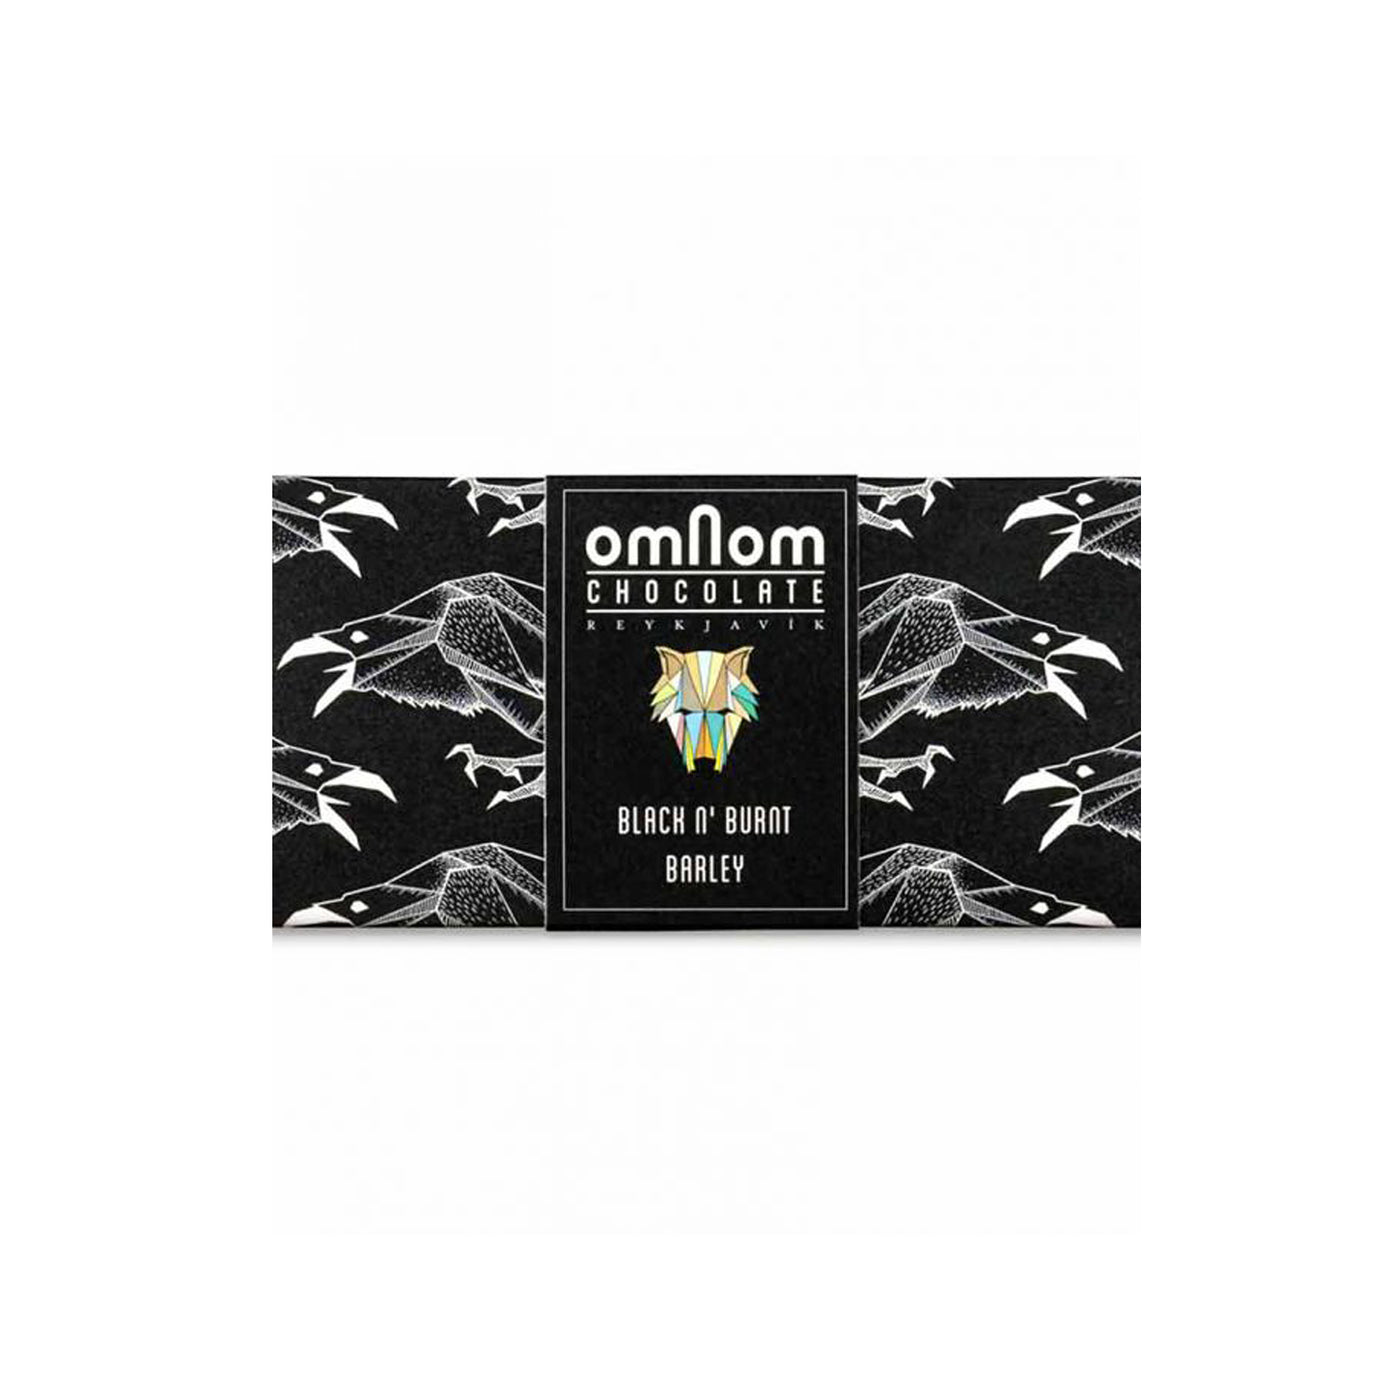 Omnom Black 'n Burnt Barley Chocolate Bar